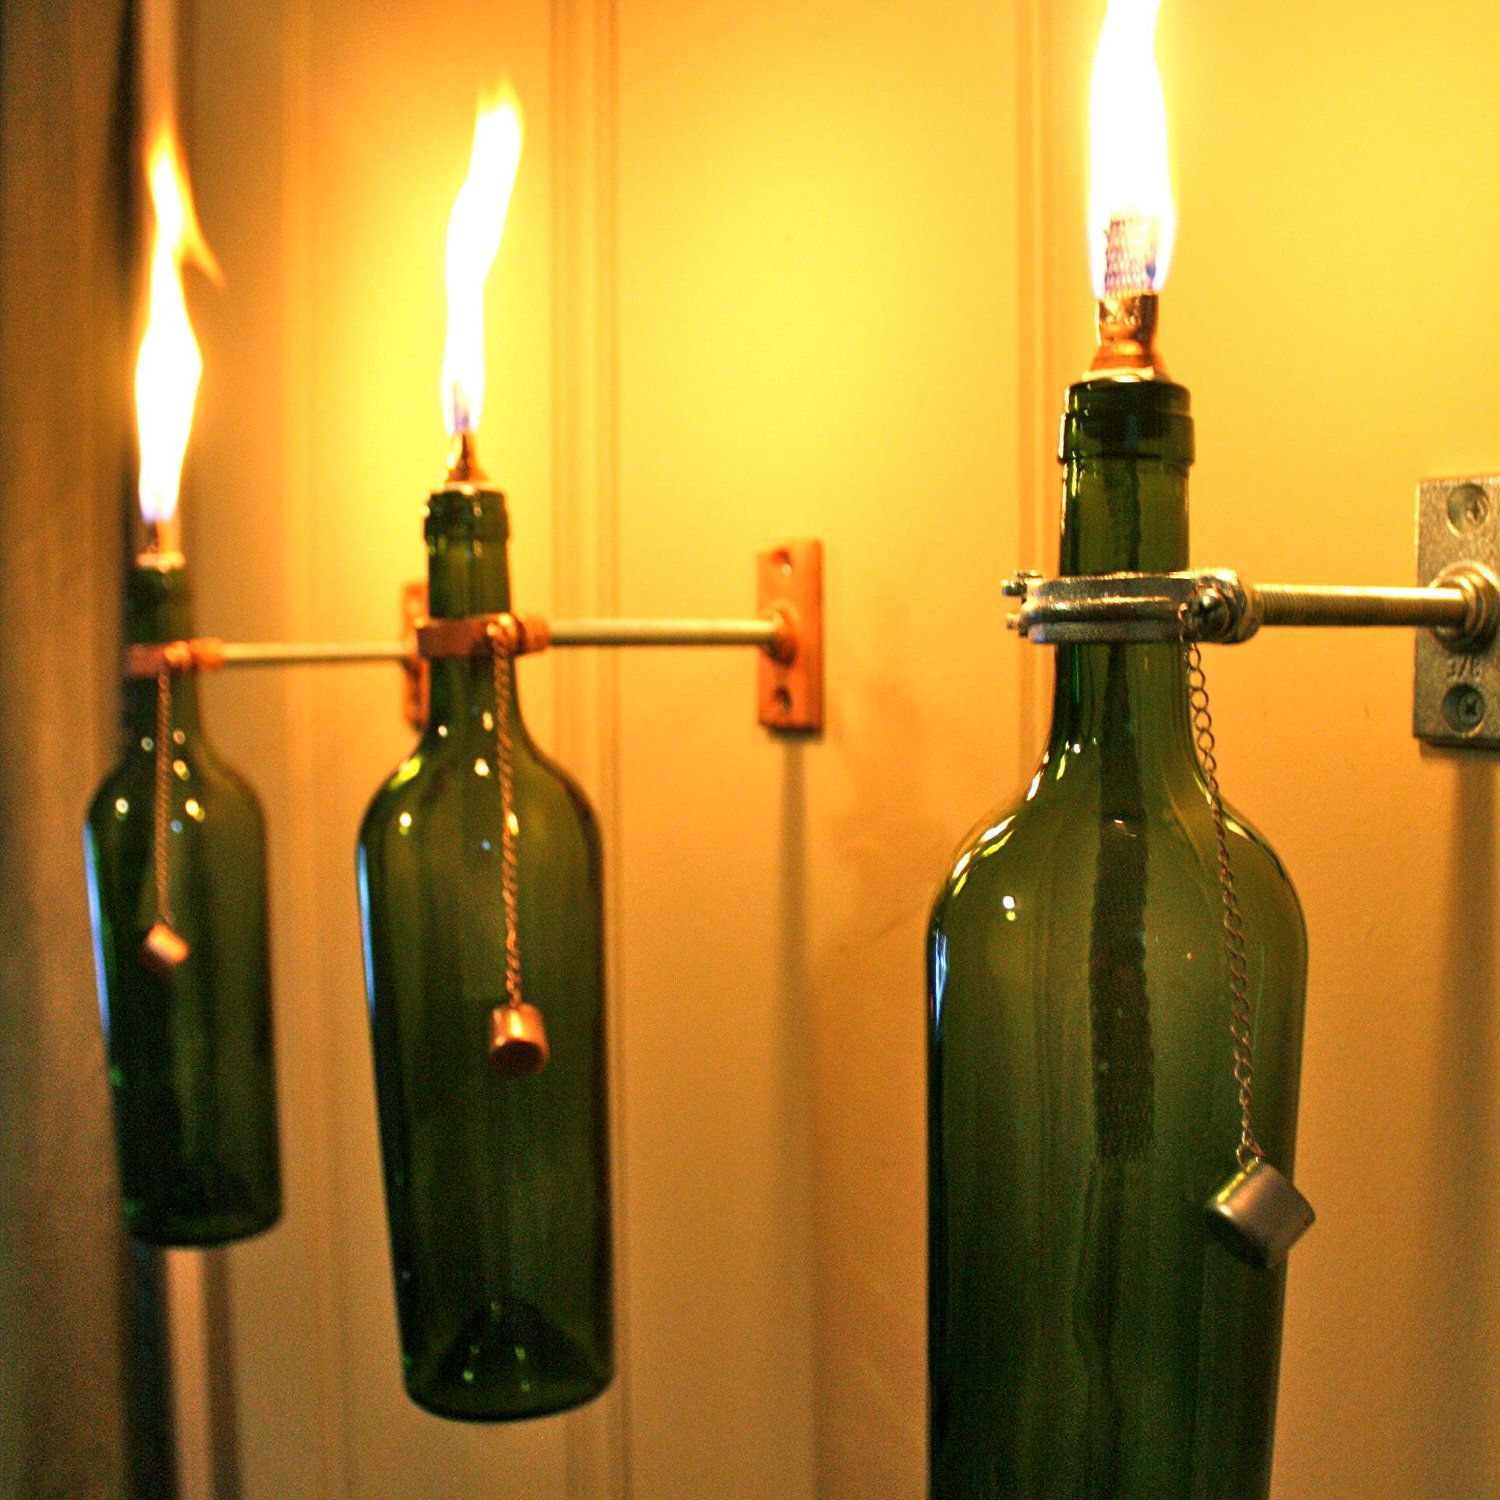 2 Wine Bottle Oil Lamps - INDOOR - Hanging Lantern - Wall Sconce ...